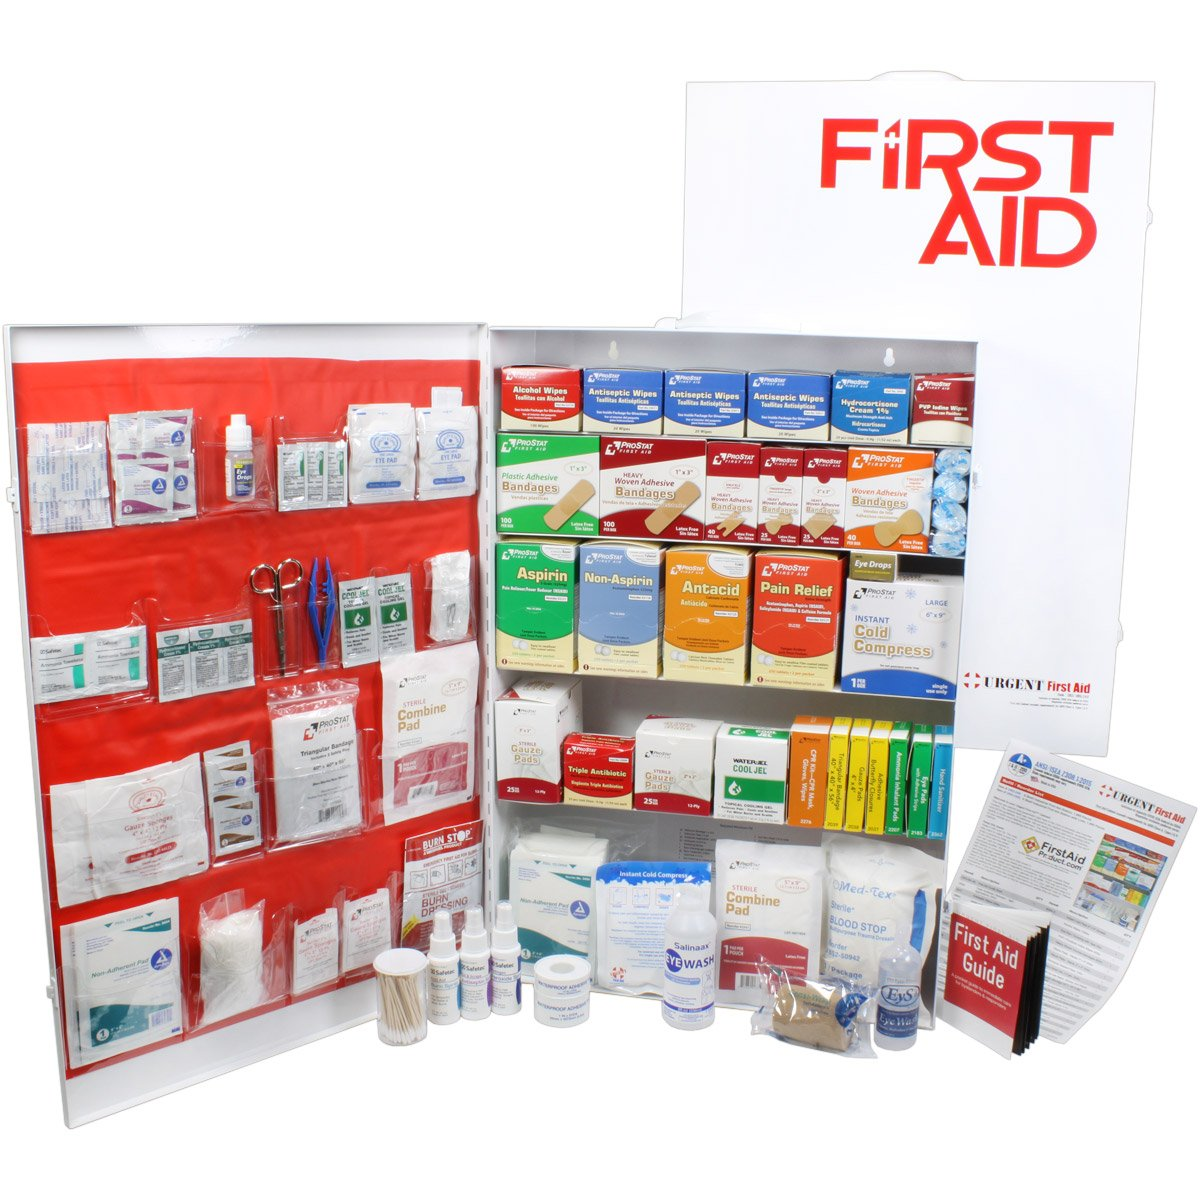 OSHA & ANSI 5 Shelf Industrial First Aid Cabinet with Pocket Liner, 200 Person, 1890 Pieces, 2015 Class A+, Types I & II, Made in USA by Urgent First Aid